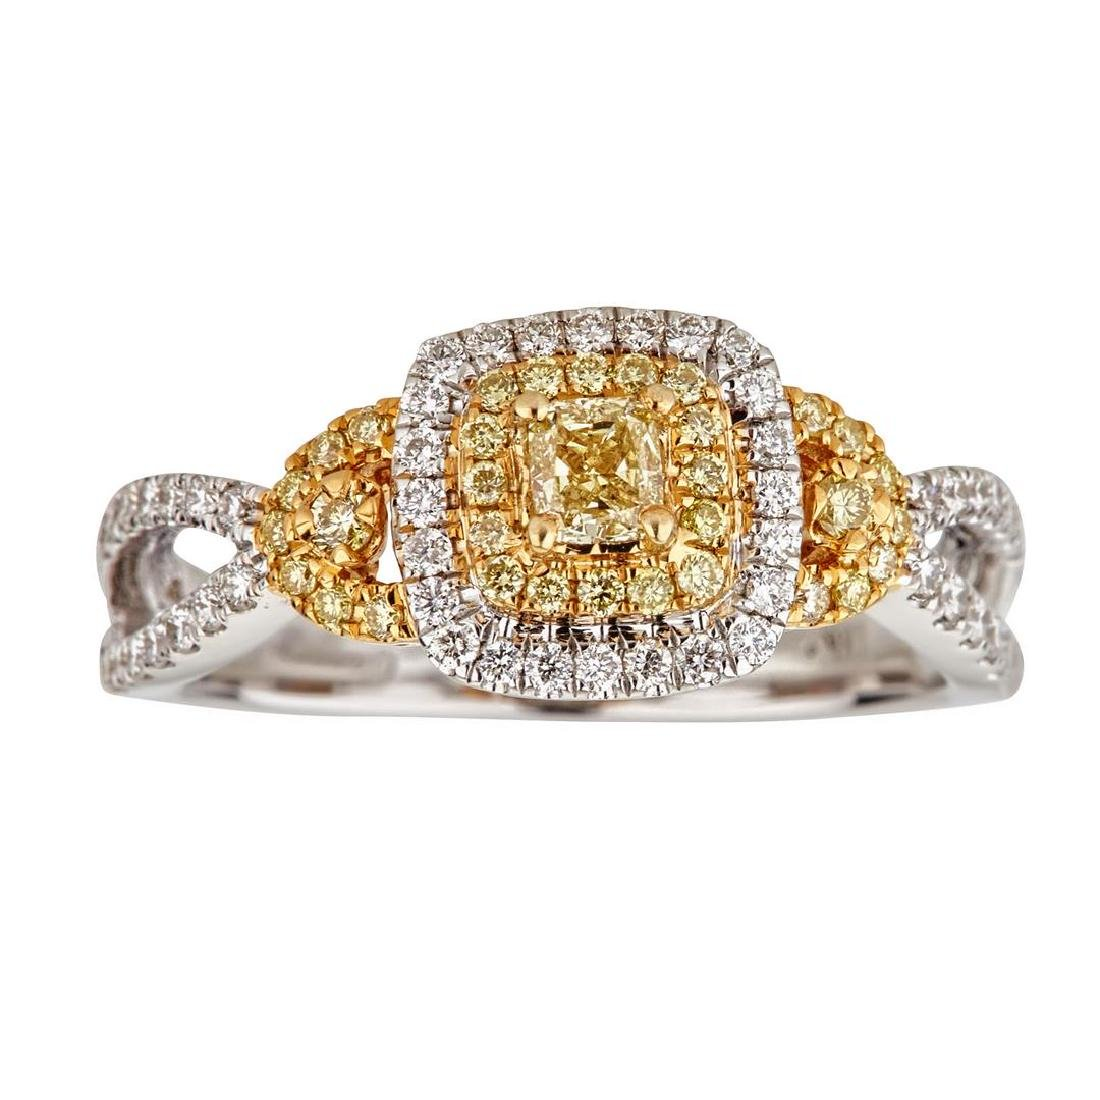 0.74 ctw Yellow and White Diamond Ring - 18KT White and